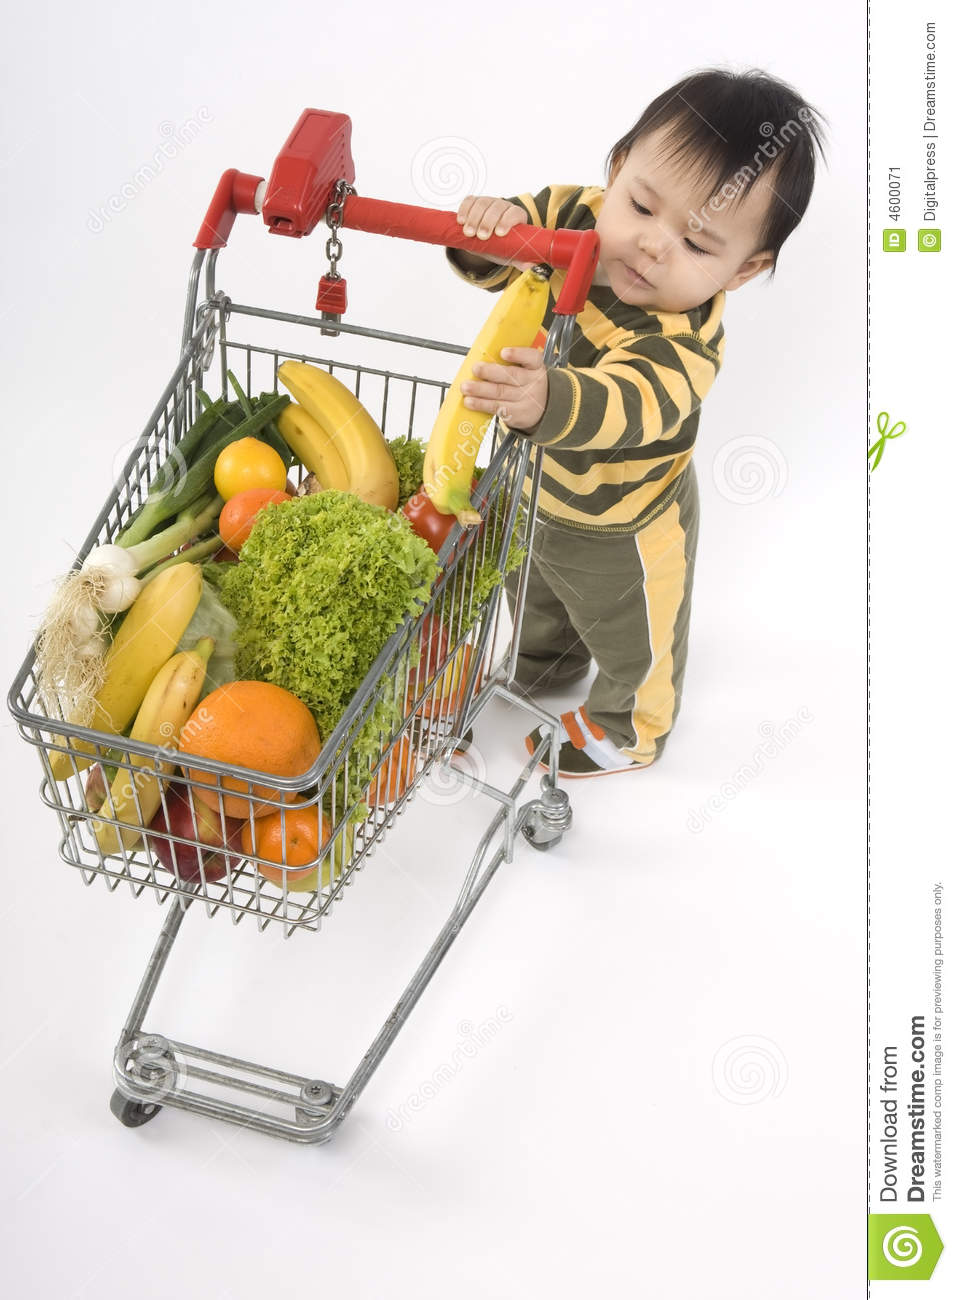 Baby in the supermarket